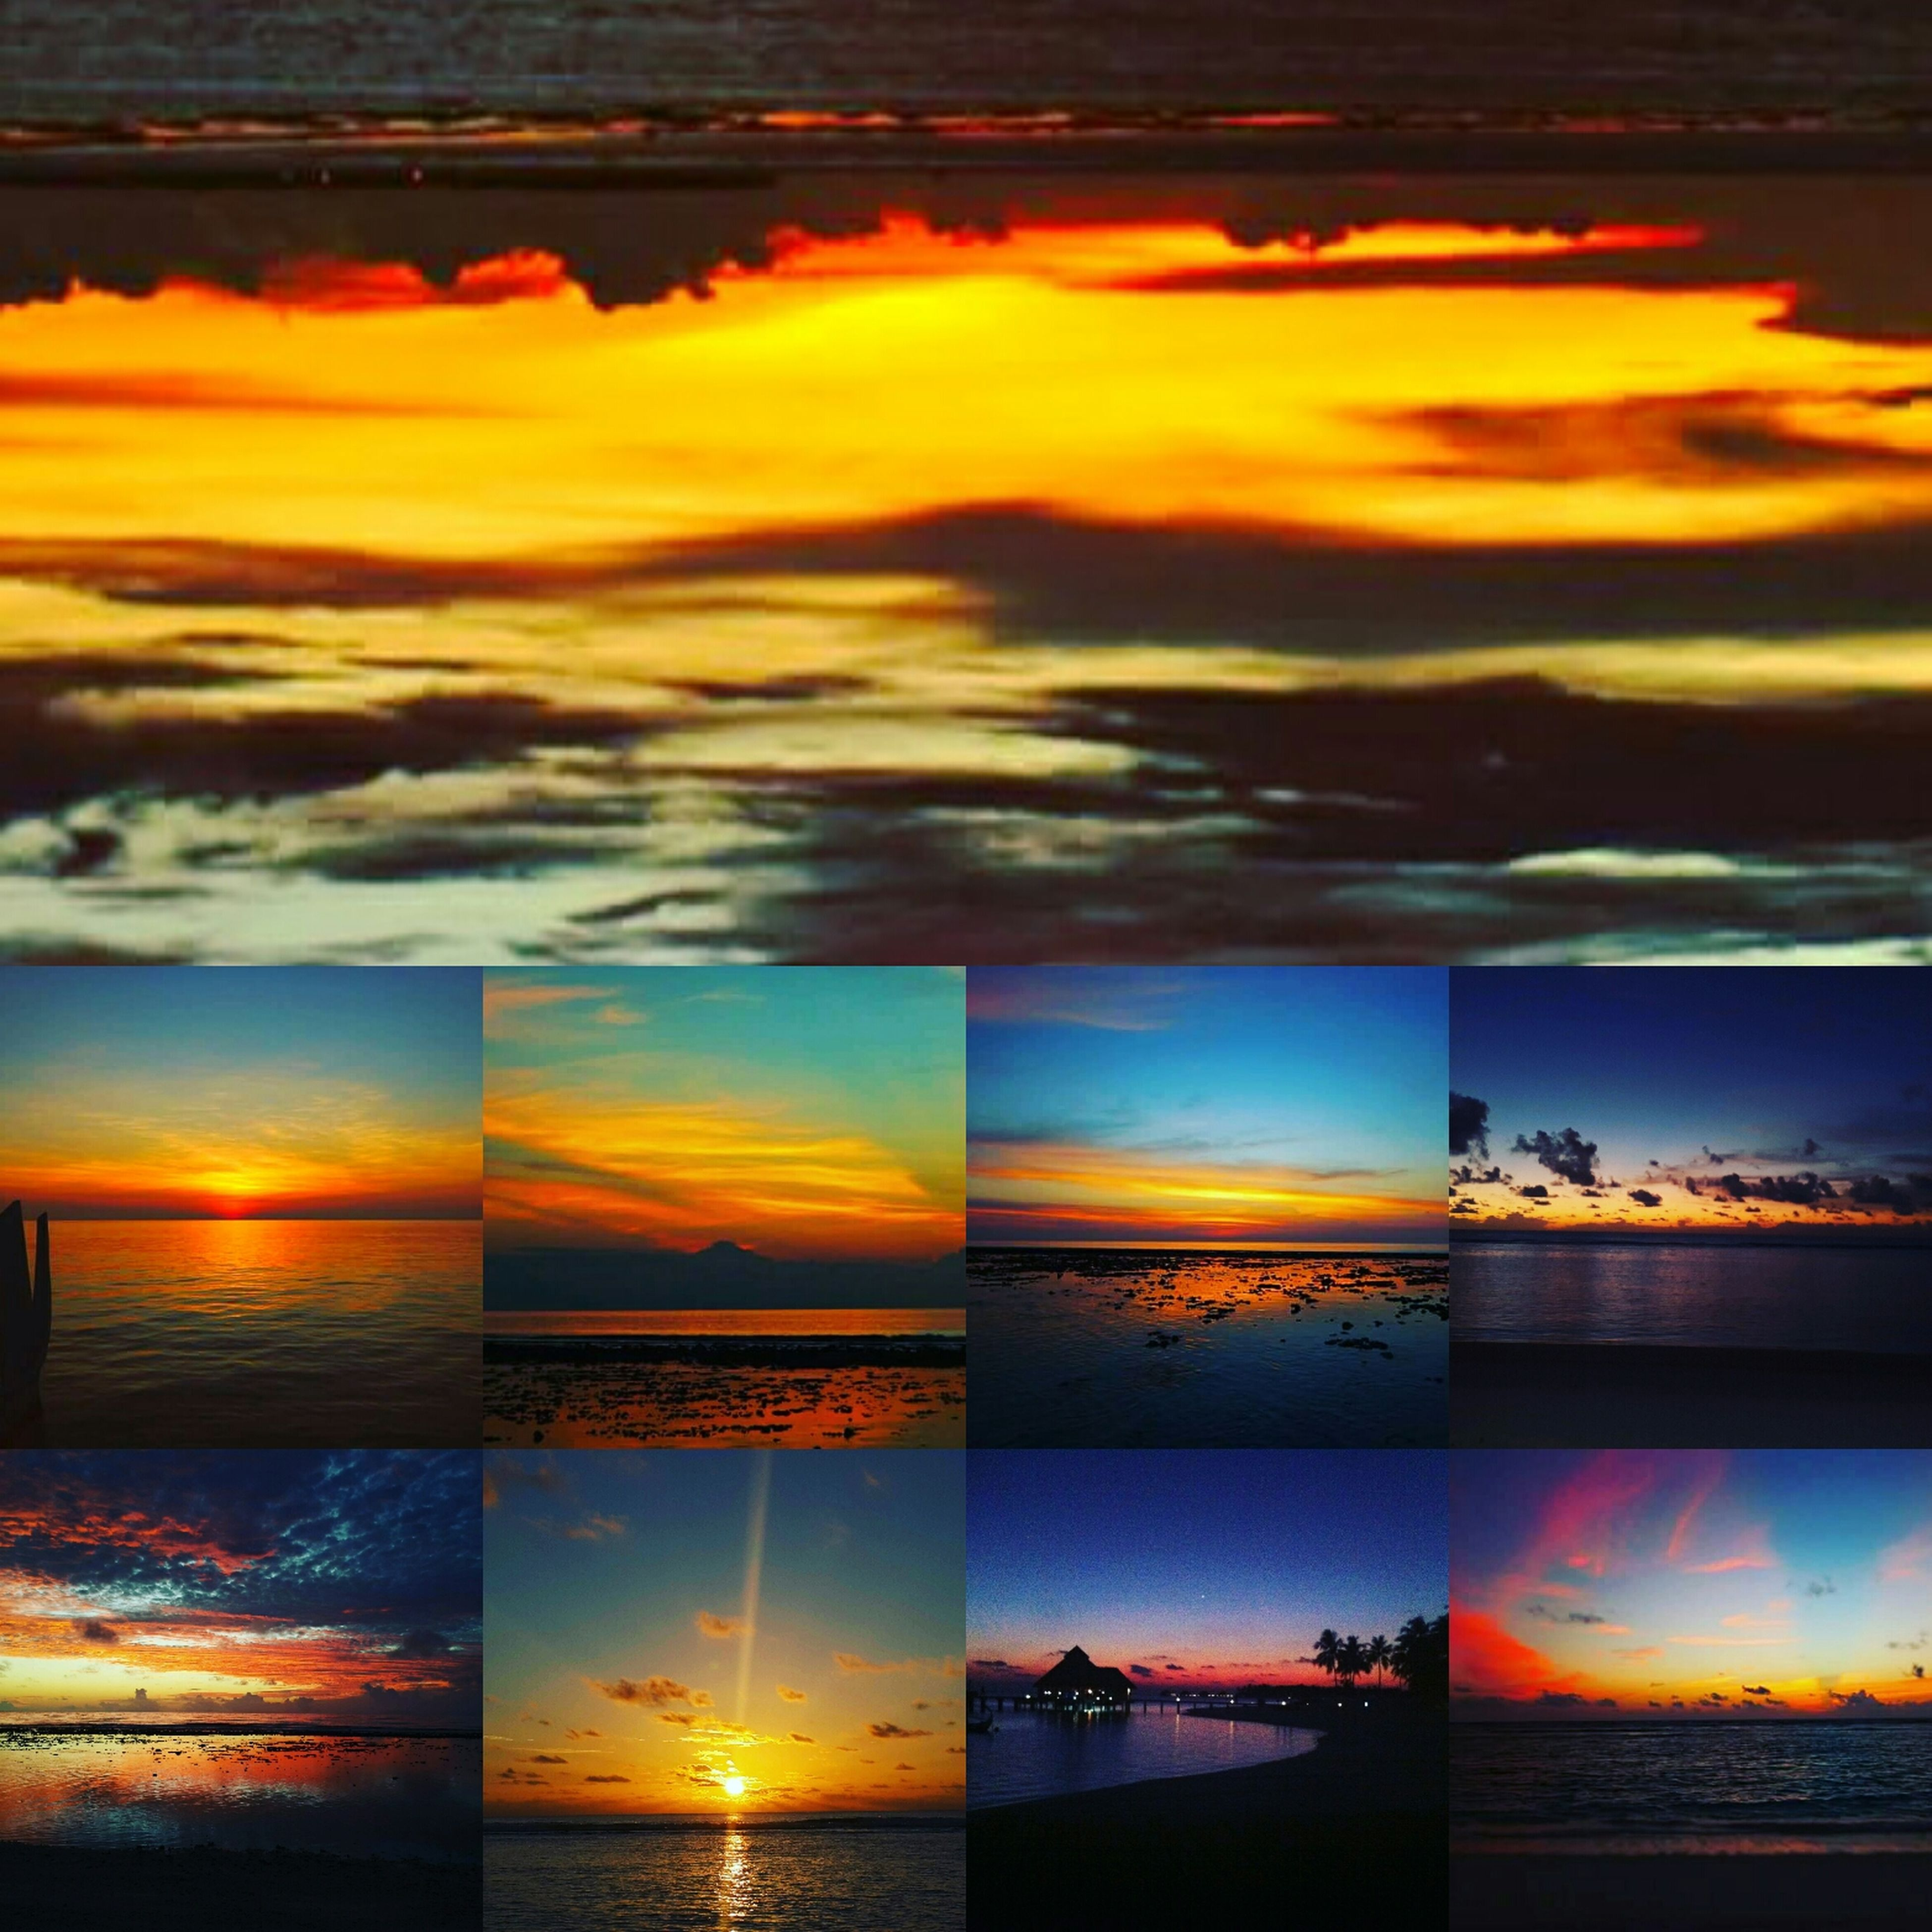 sunset, water, sea, collage, yellow, tranquility, scenics, orange color, cloud, in a row, tranquil scene, outdoors, beauty in nature, dramatic sky, nature, cloudscape, no people, montage, water surface, majestic, tourism, vibrant color